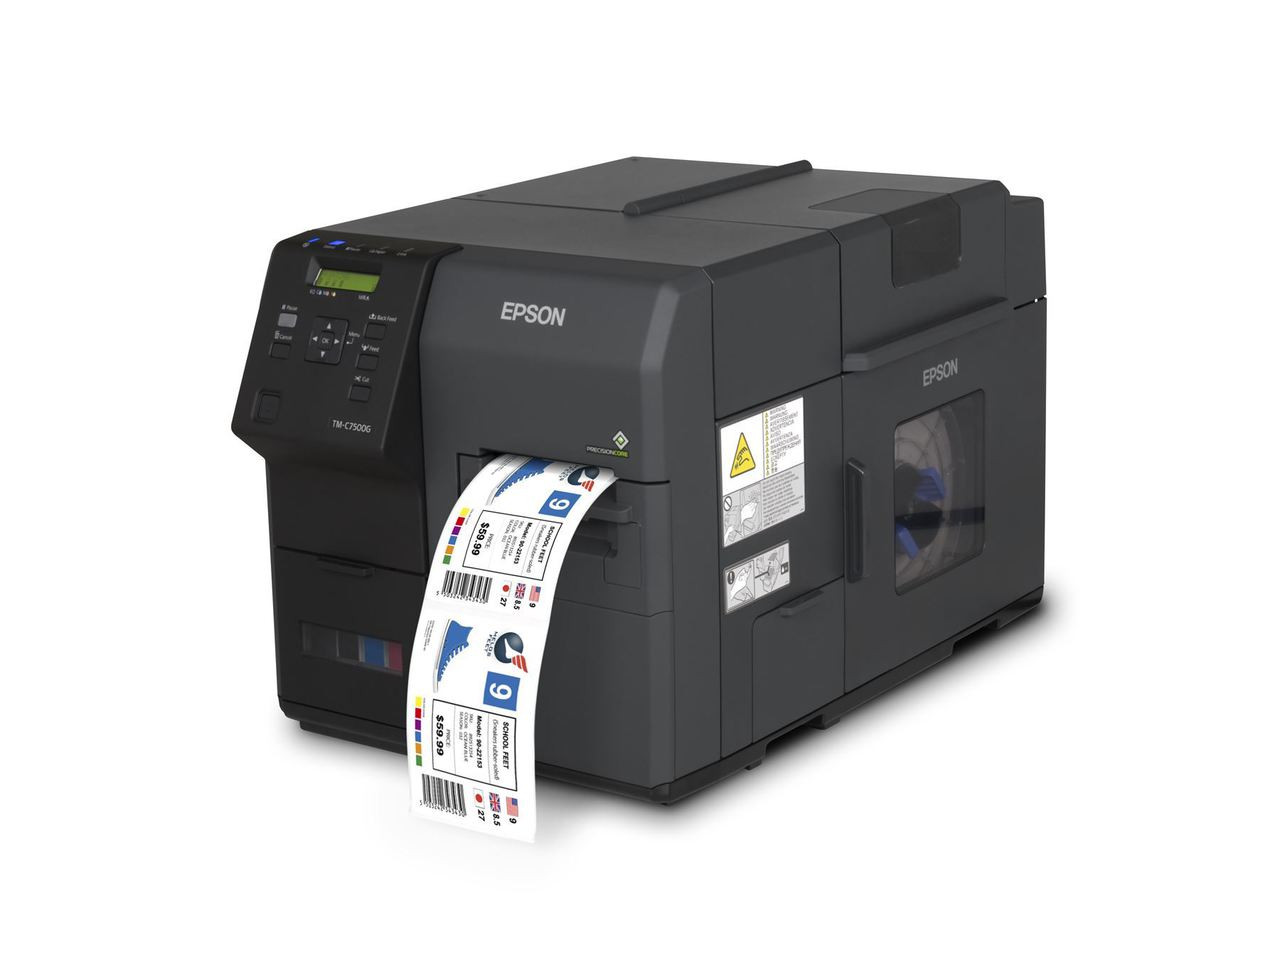 Epson TM-C7500GE Label Printer with Wasatch SoftRIP Software